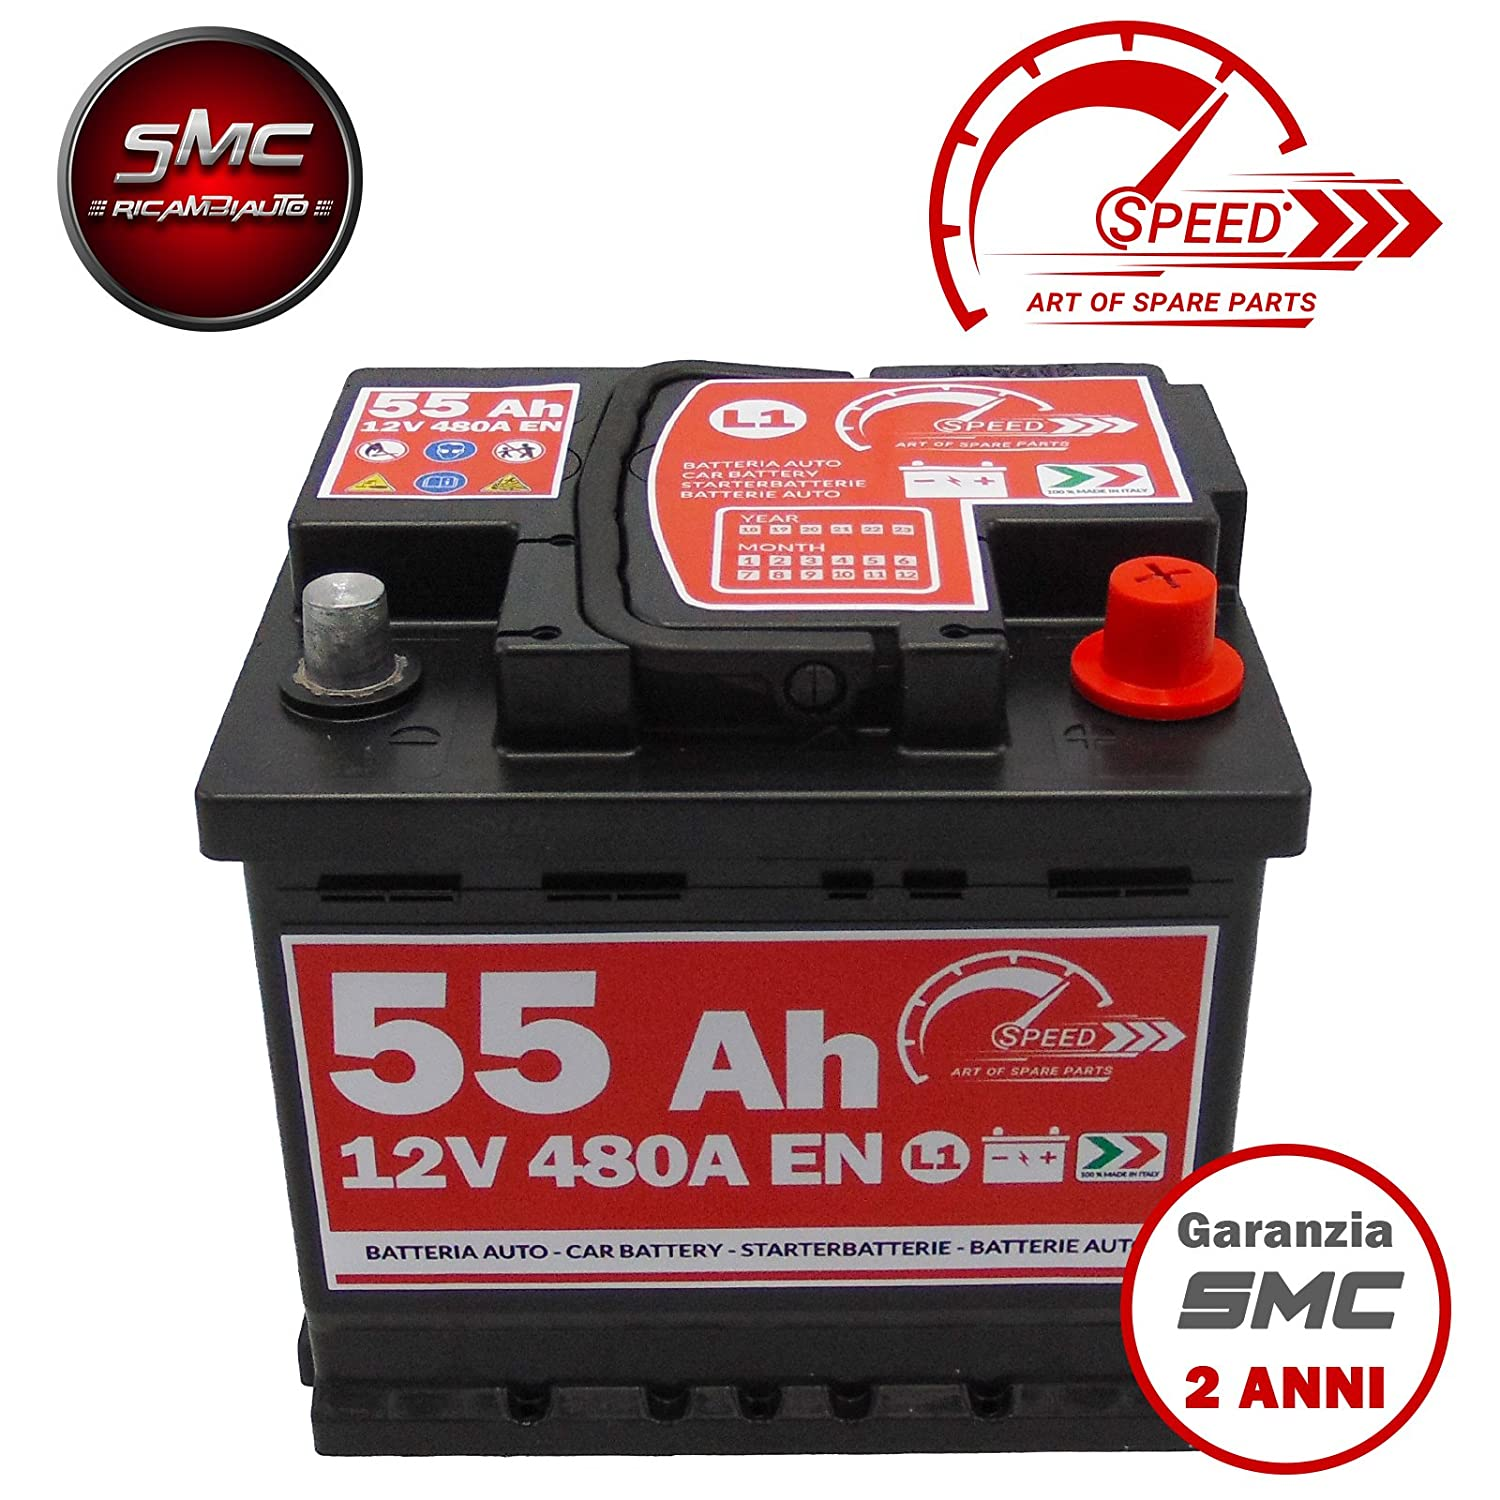 BATTERIA AUTO ORIGINALE SPEED BY SMC CODICE 7903430 L155 12V 55AH 480A EN CON POLO POSITIVO A DESTRA